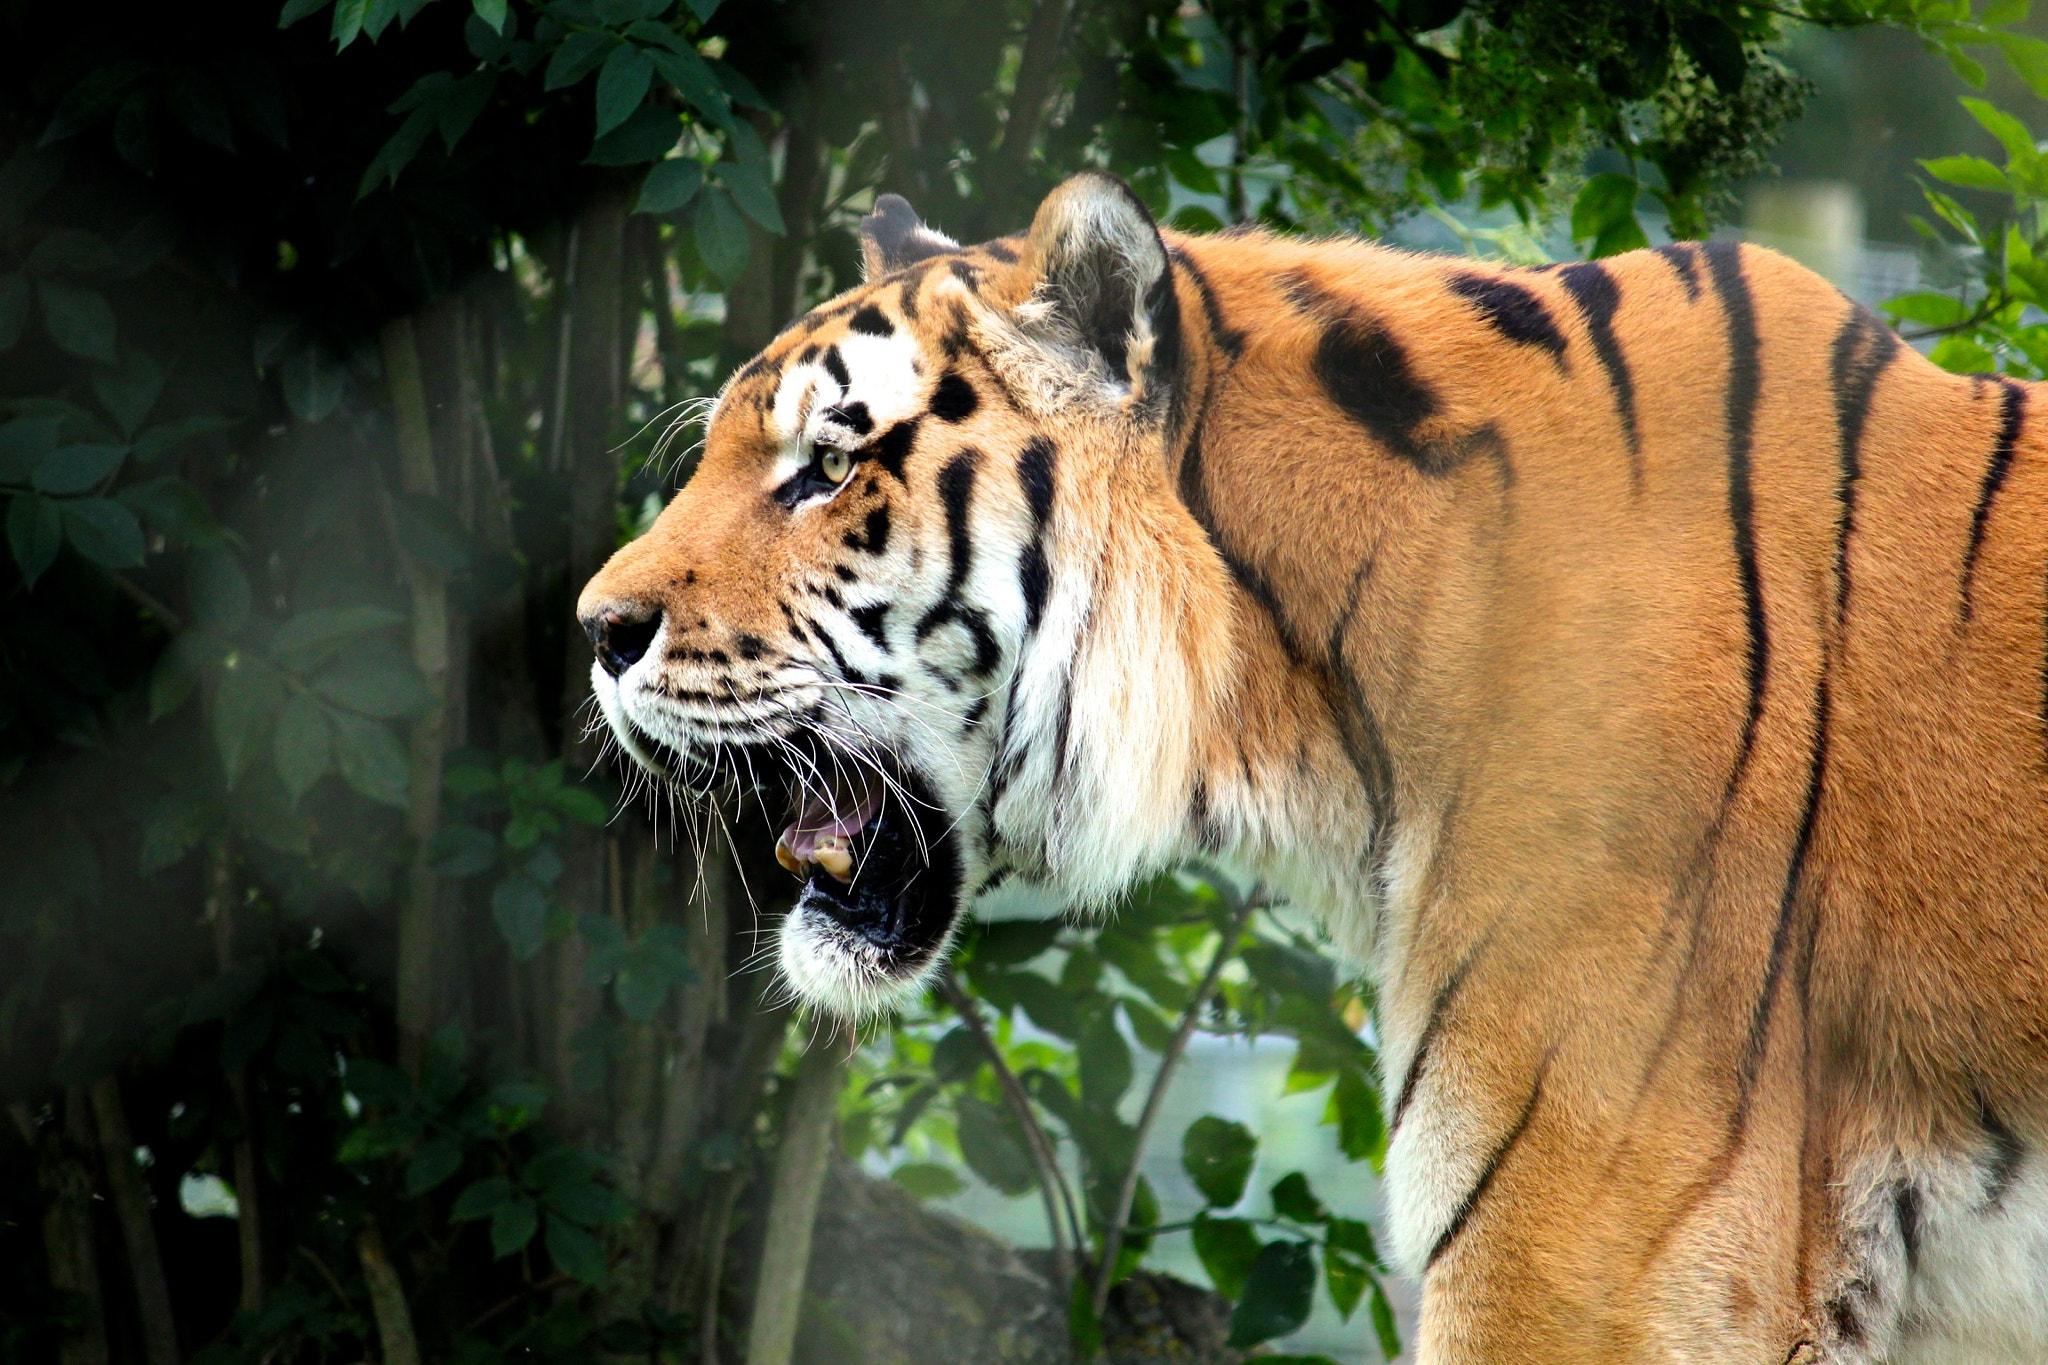 Photograph Tiger Tiger by Jona Turner on 500px